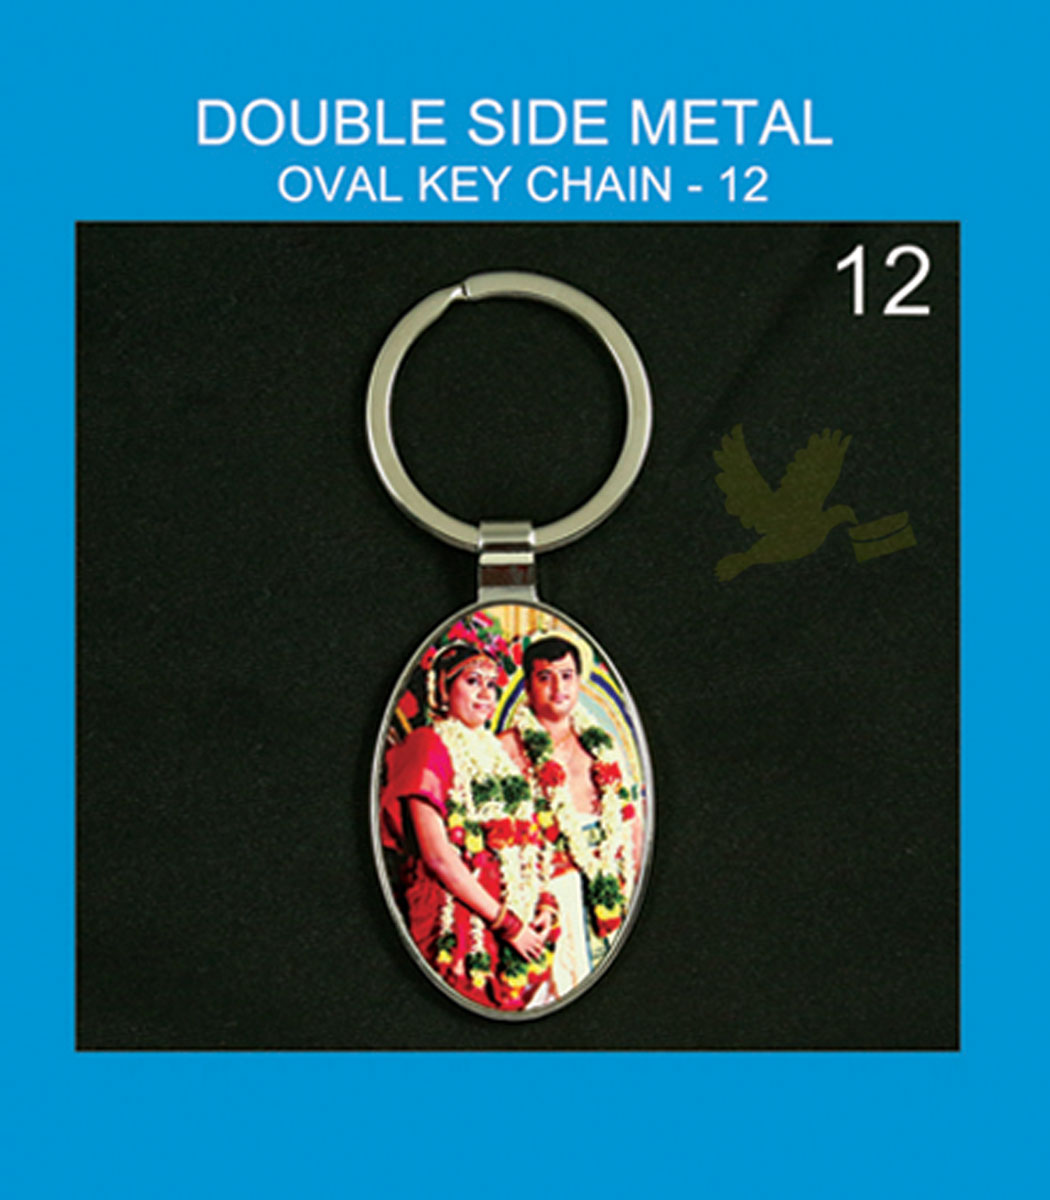 double side metal oval key chain